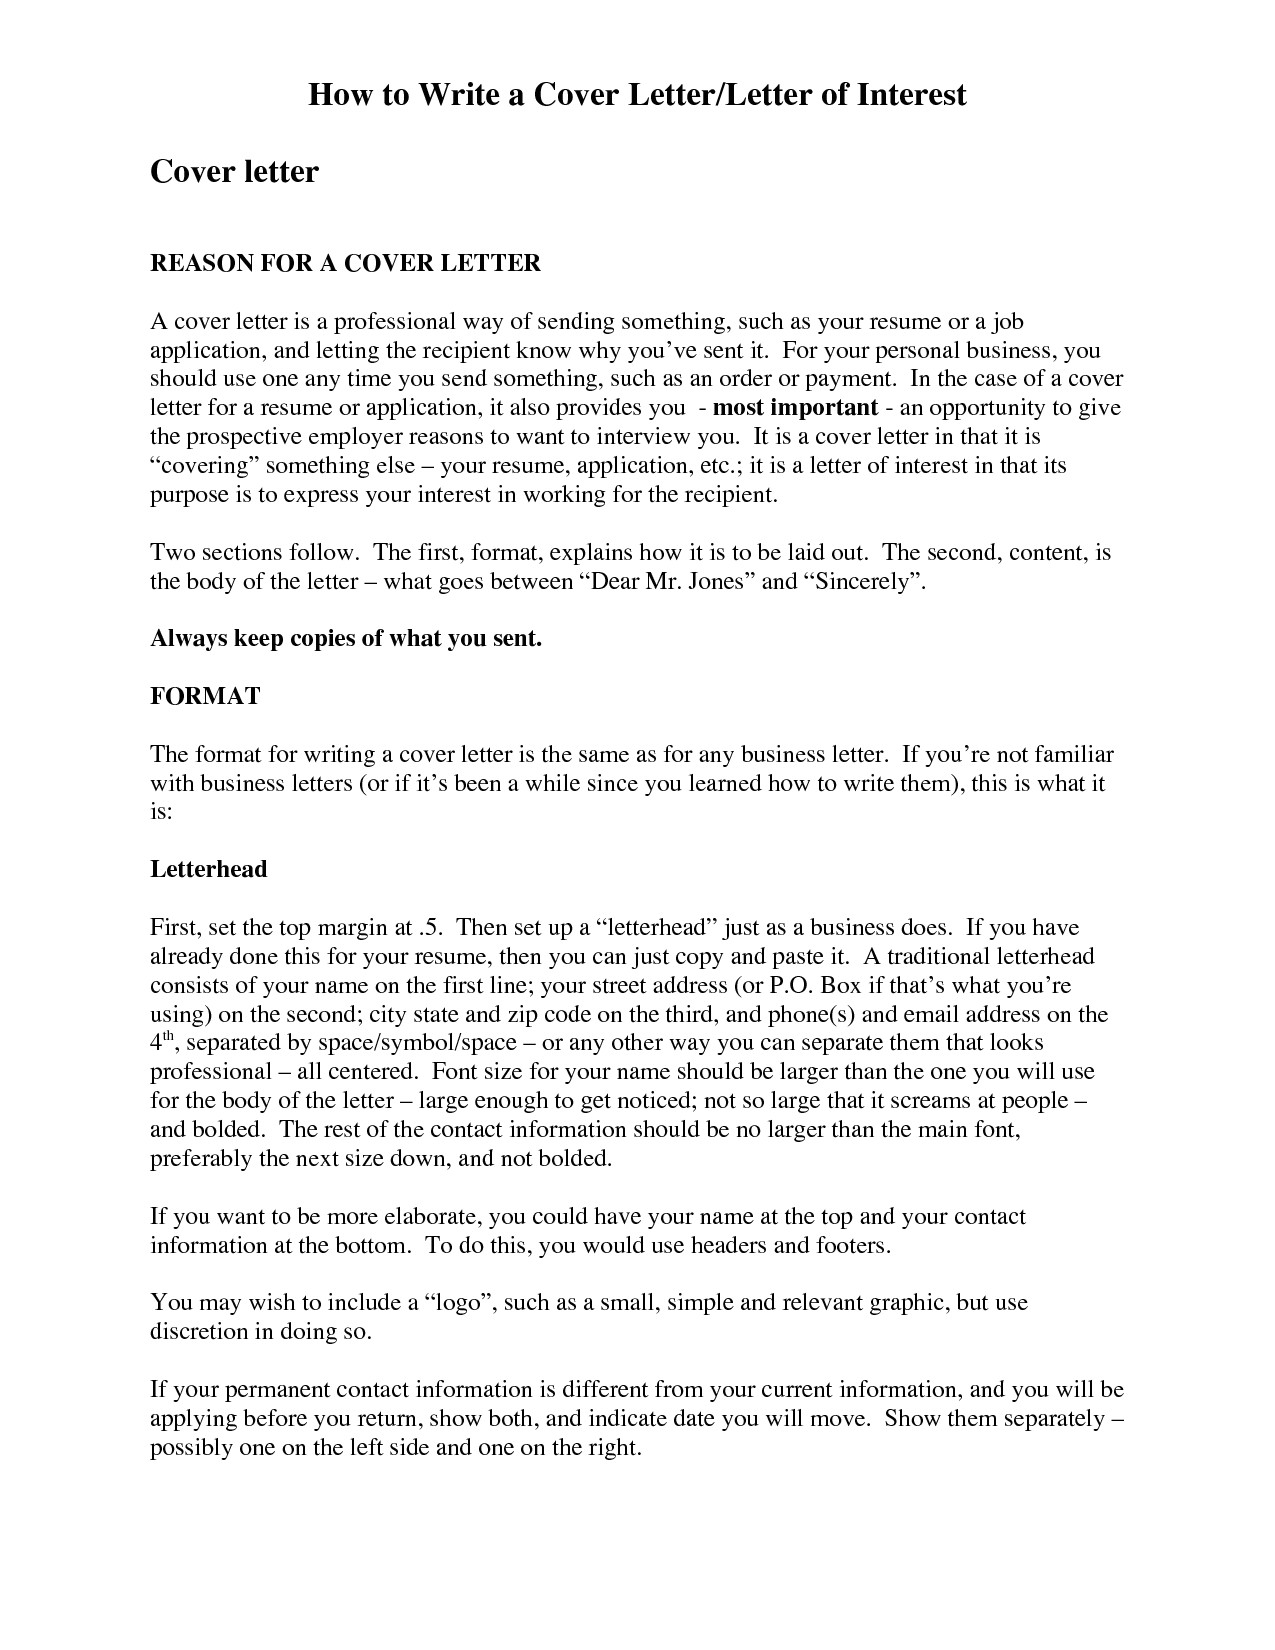 letter of interest cover letter